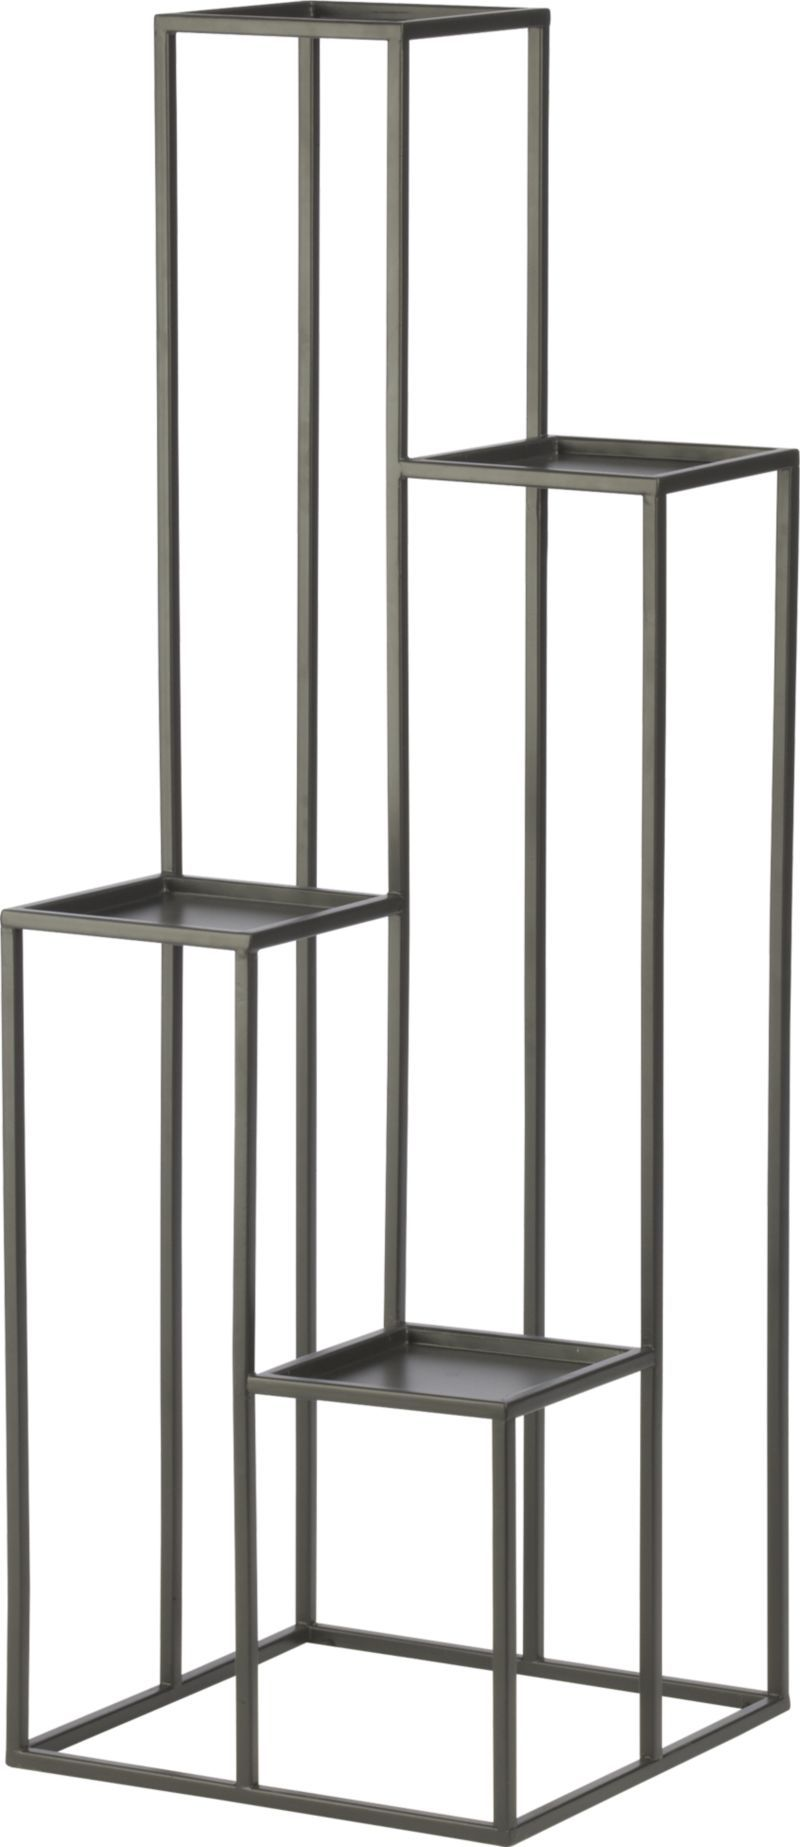 quadrant plant stand in garden patio crate and barrel jorge